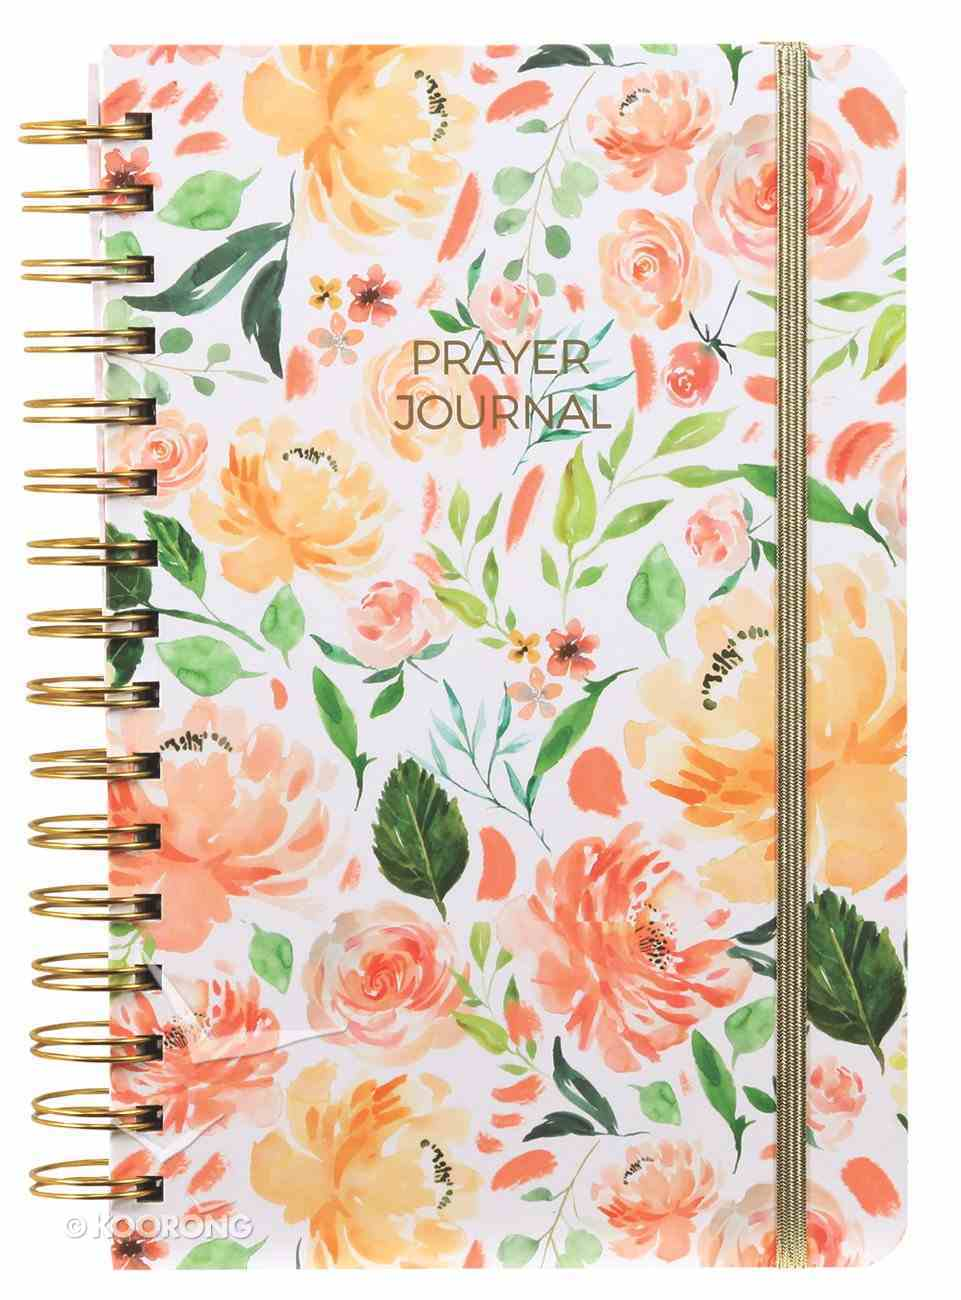 Prayer Journal: One Year Weekly Layout (Peach Floral) Spiral